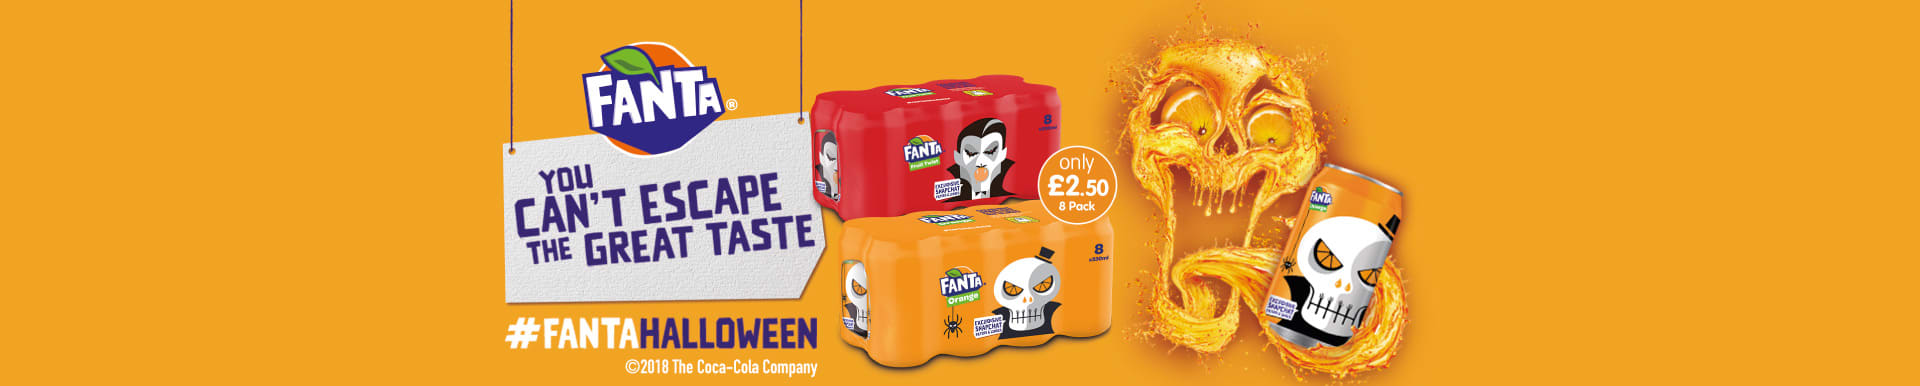 Save on Fanta for Halloween at B&M.